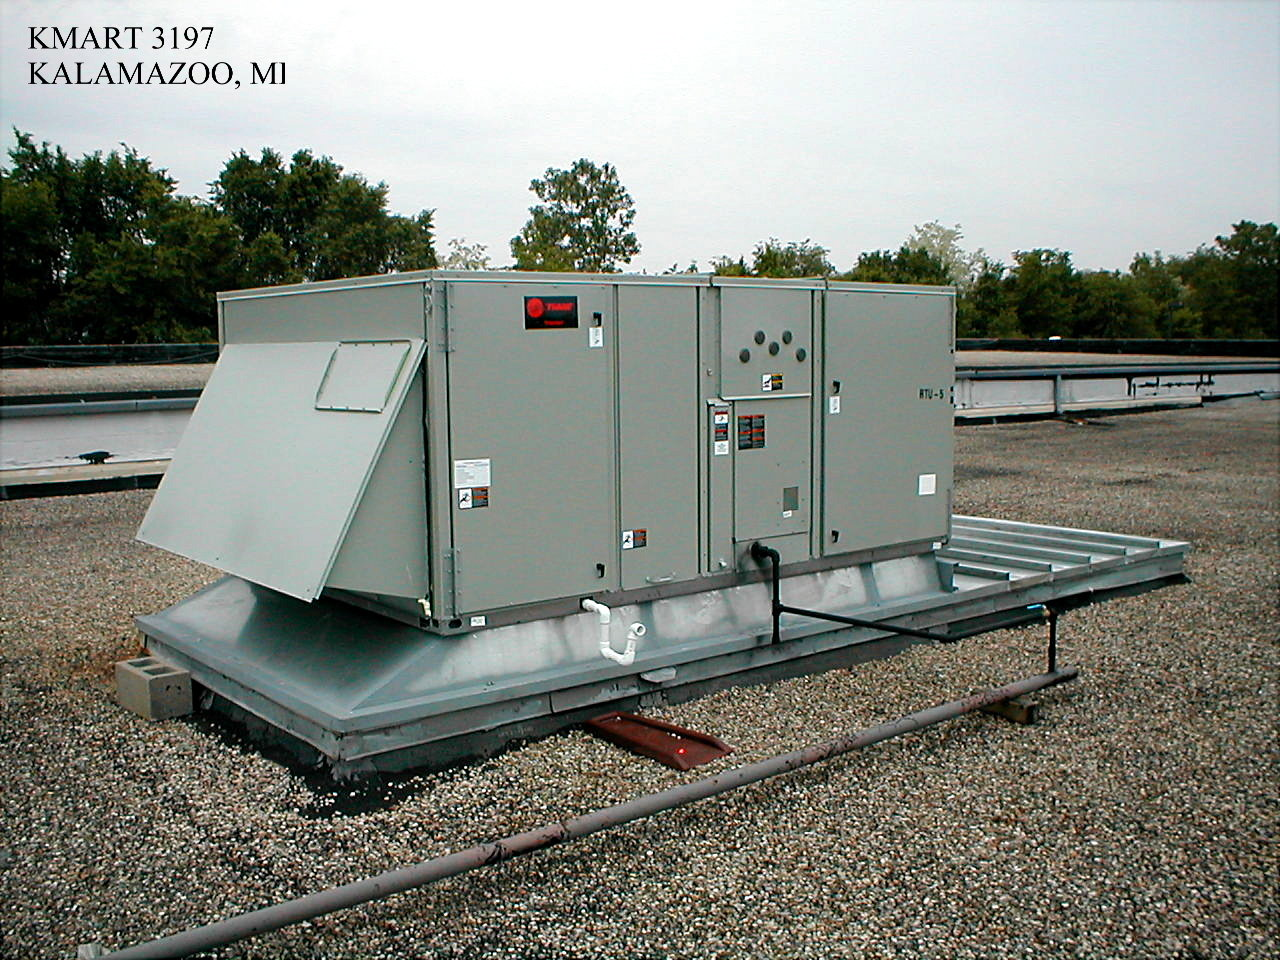 Water Cooled Chiller Systems also GREE central air conditioning Rooftop packaged air conditioner additionally Rooftop Ac Units likewise HVAC 20System in addition Shipping oversized packages. on rooftop packaged unit